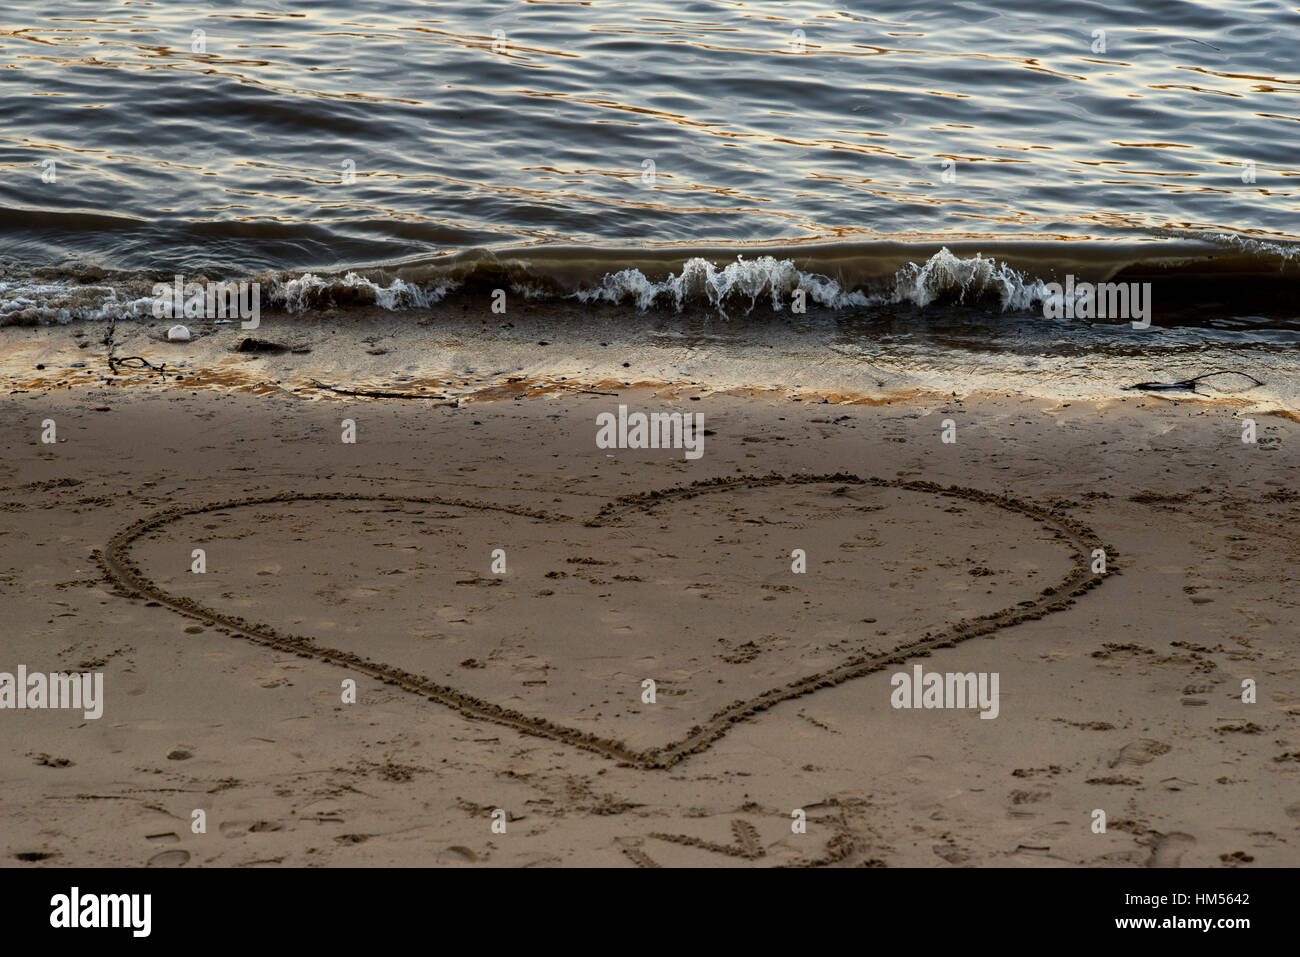 Heart shape drawn in the sand on a beach. London, Great Britain - Stock Image